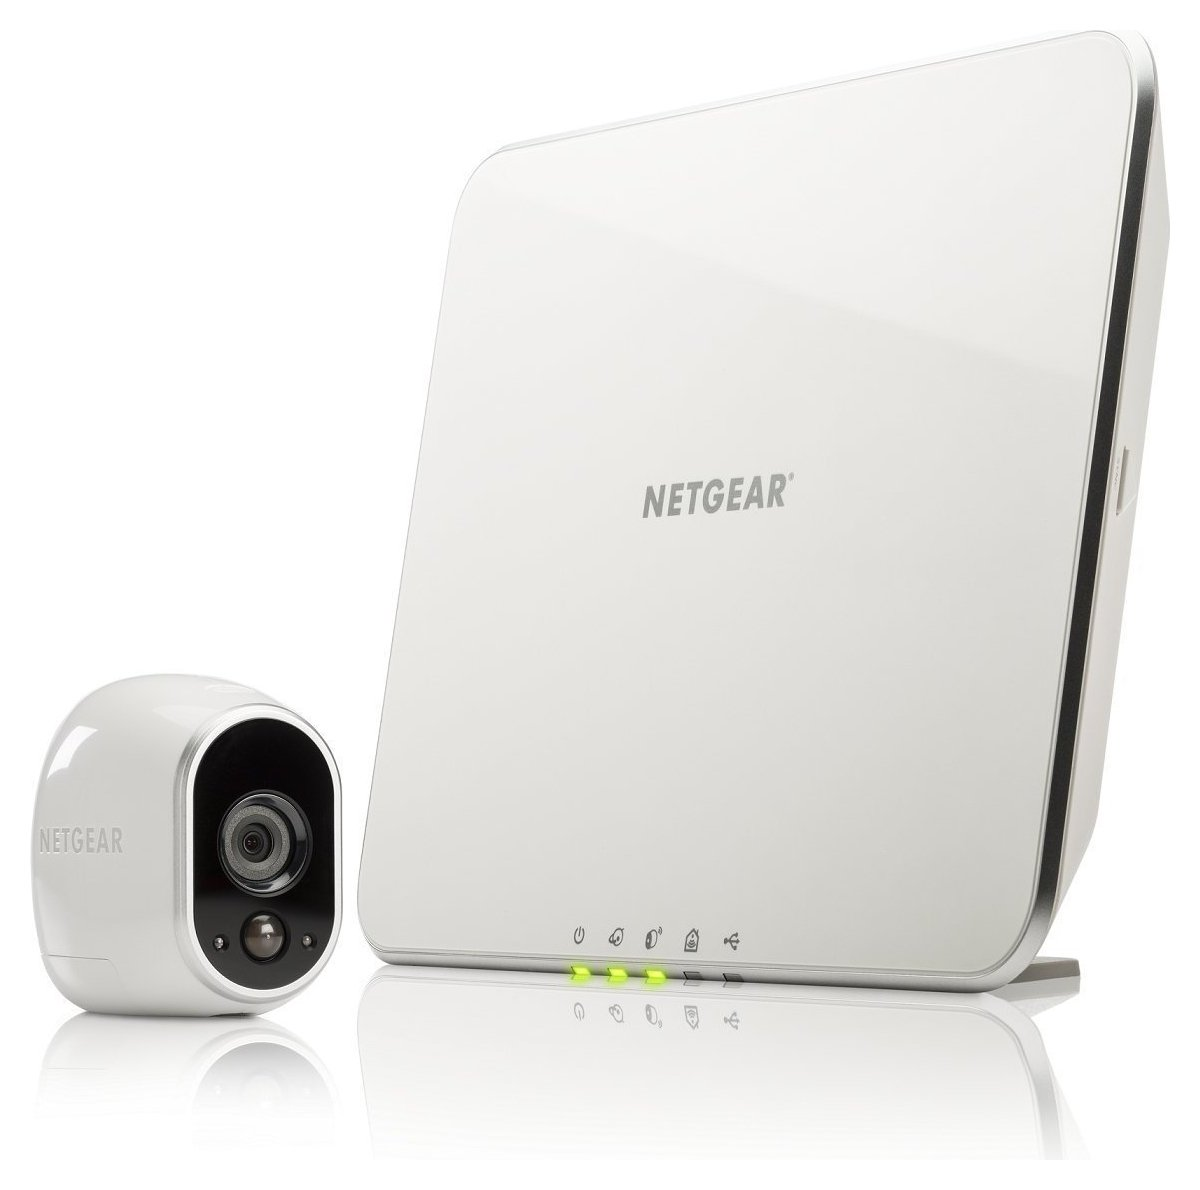 Netgear Netgear VMS3130 Night and Day Home Security Camera.